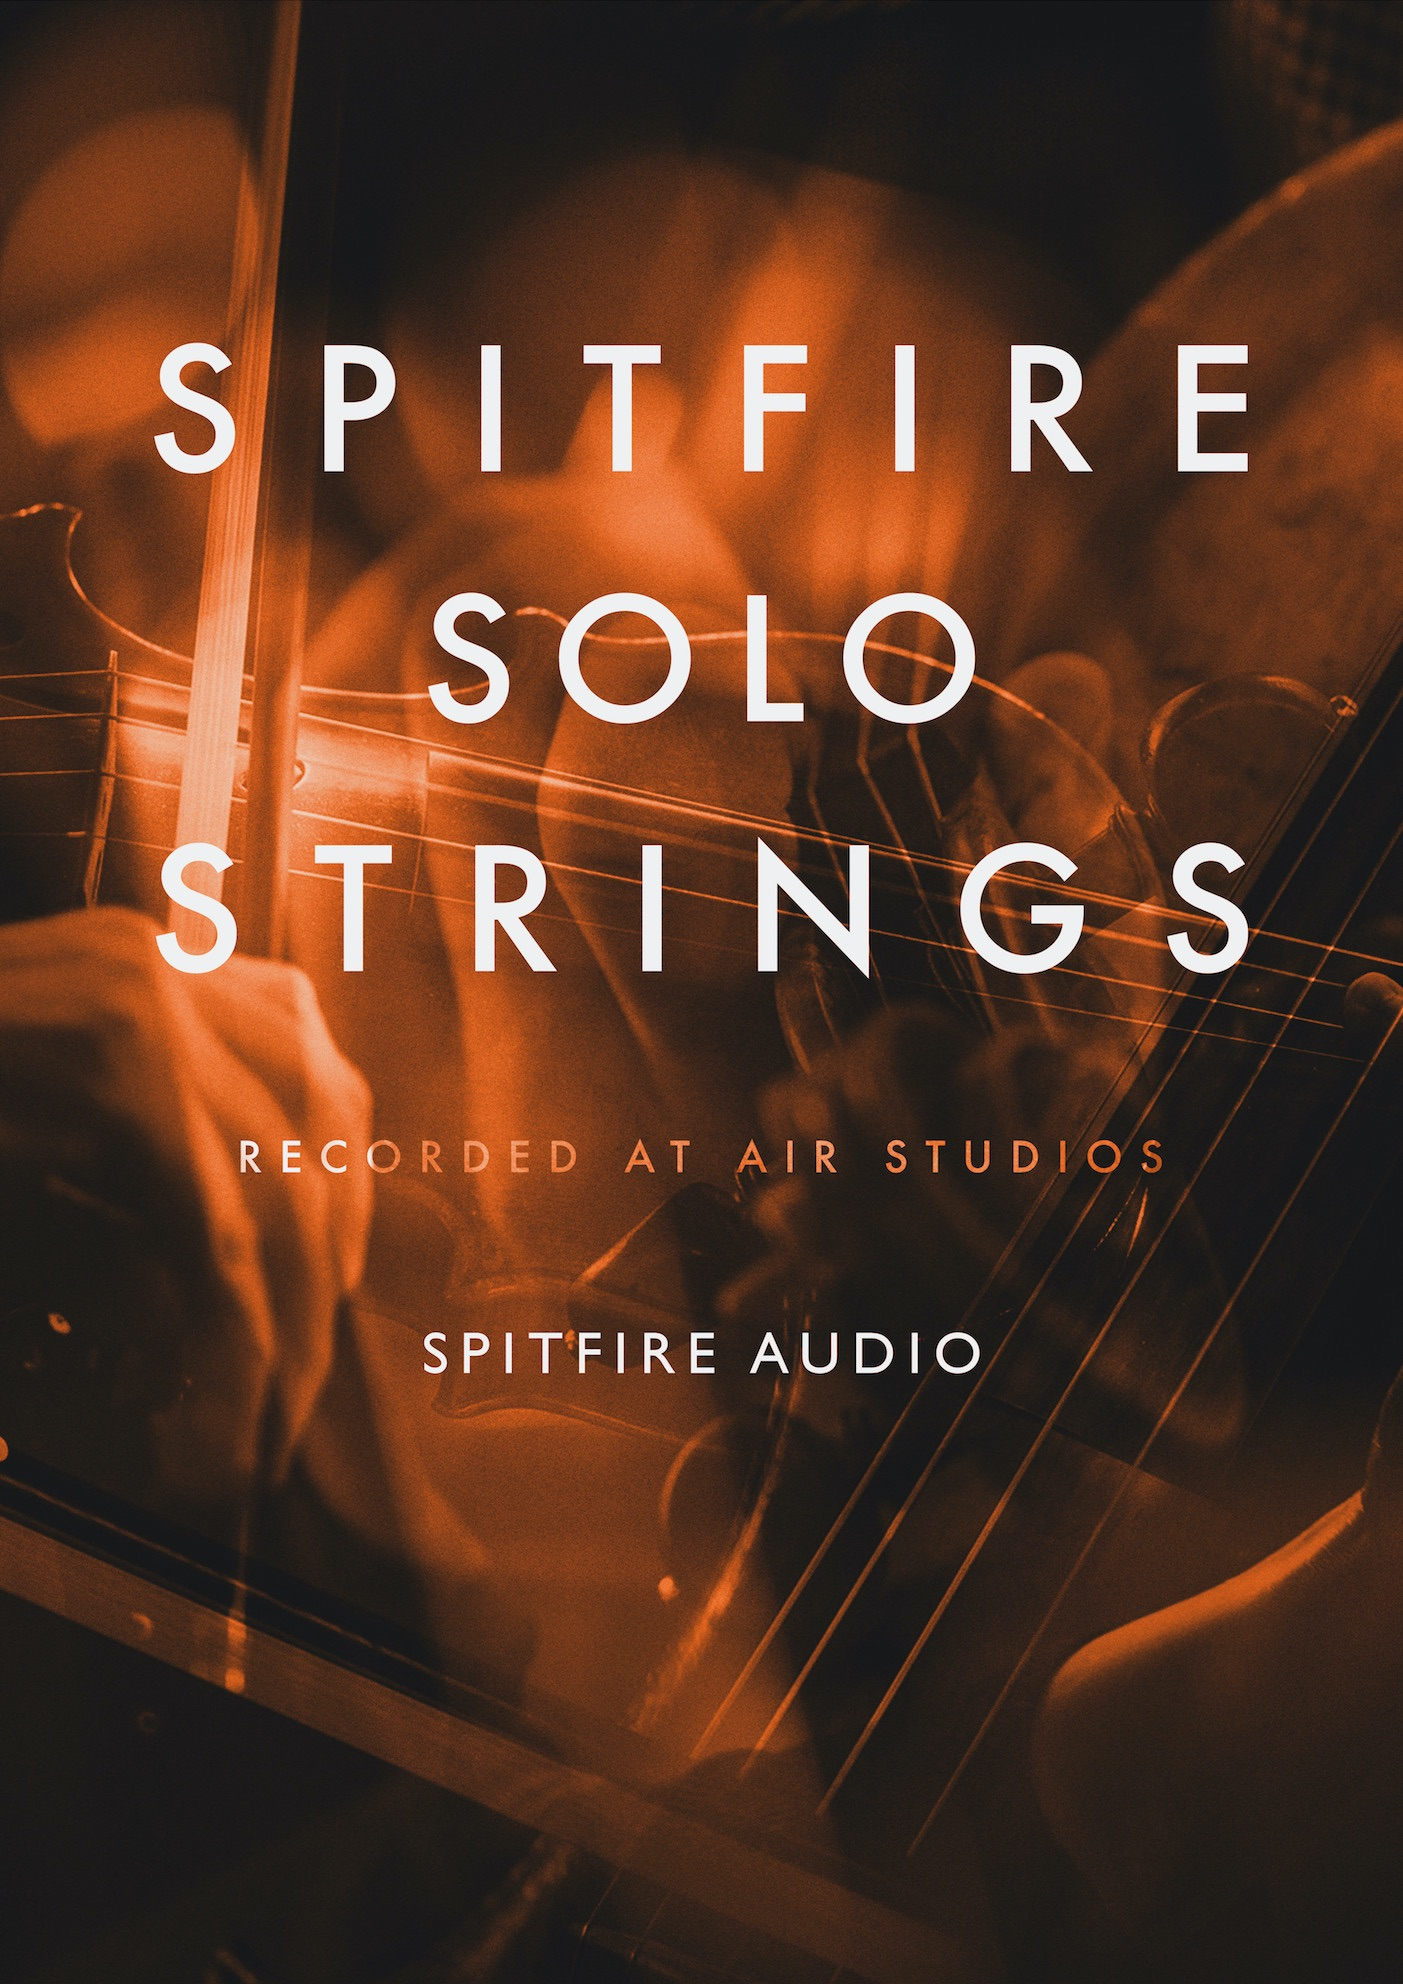 News: Spitfire Audio mit Sample-Instrument Spitfire Solo Strings